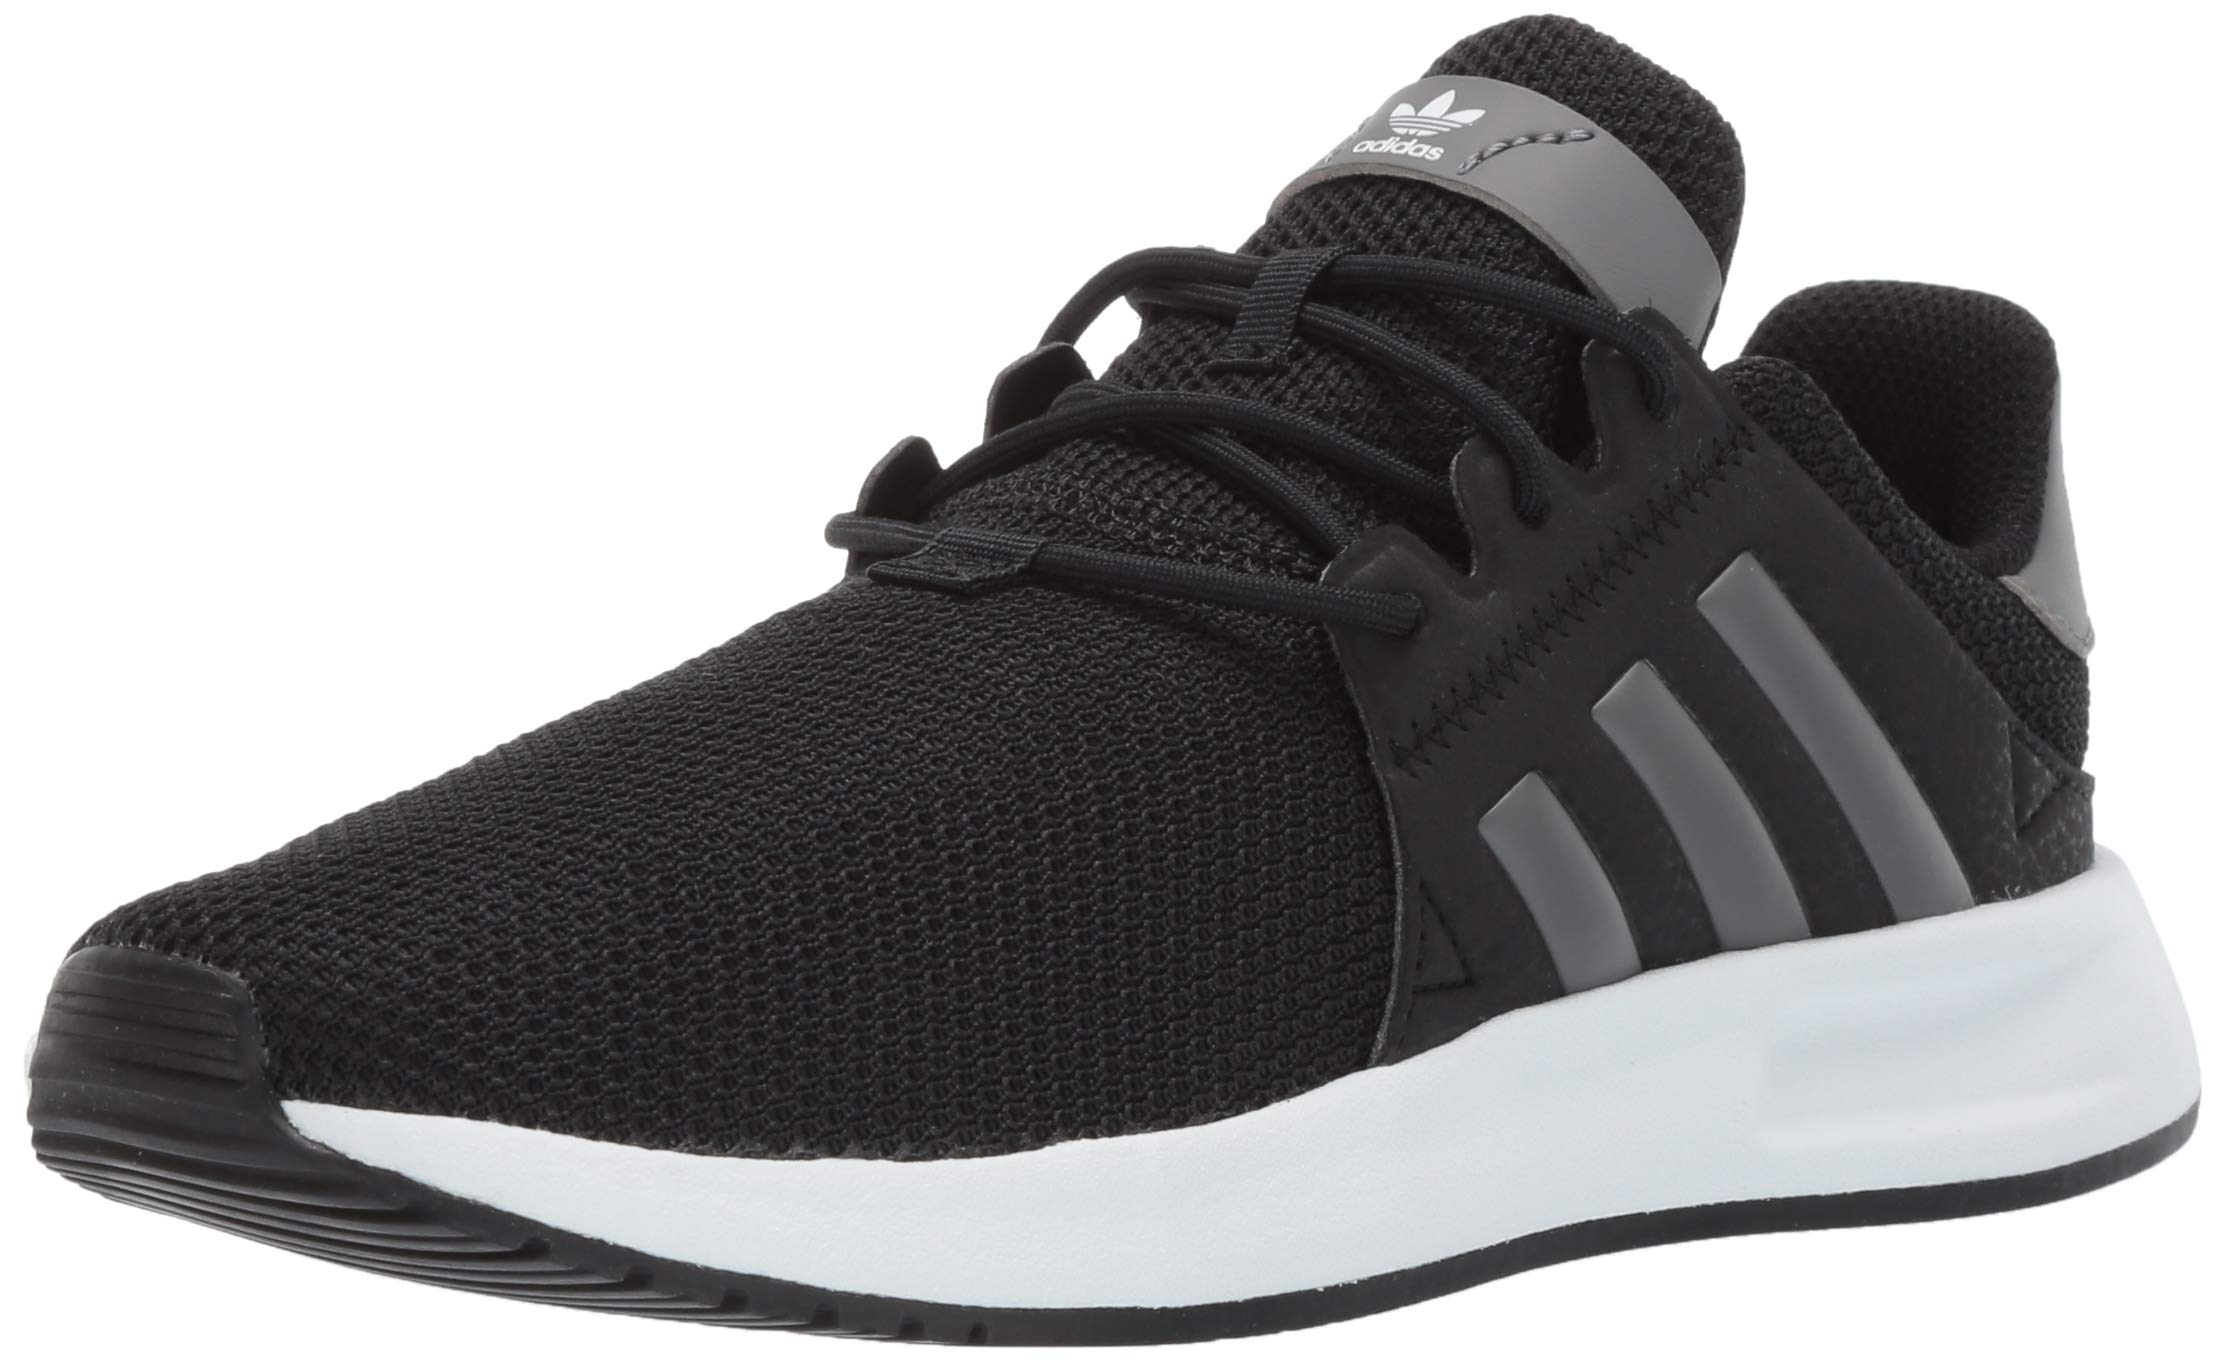 adidas Originals Baby X_PLR EL Running Shoe, Black/Grey/White, 10K M US Toddler by adidas Originals